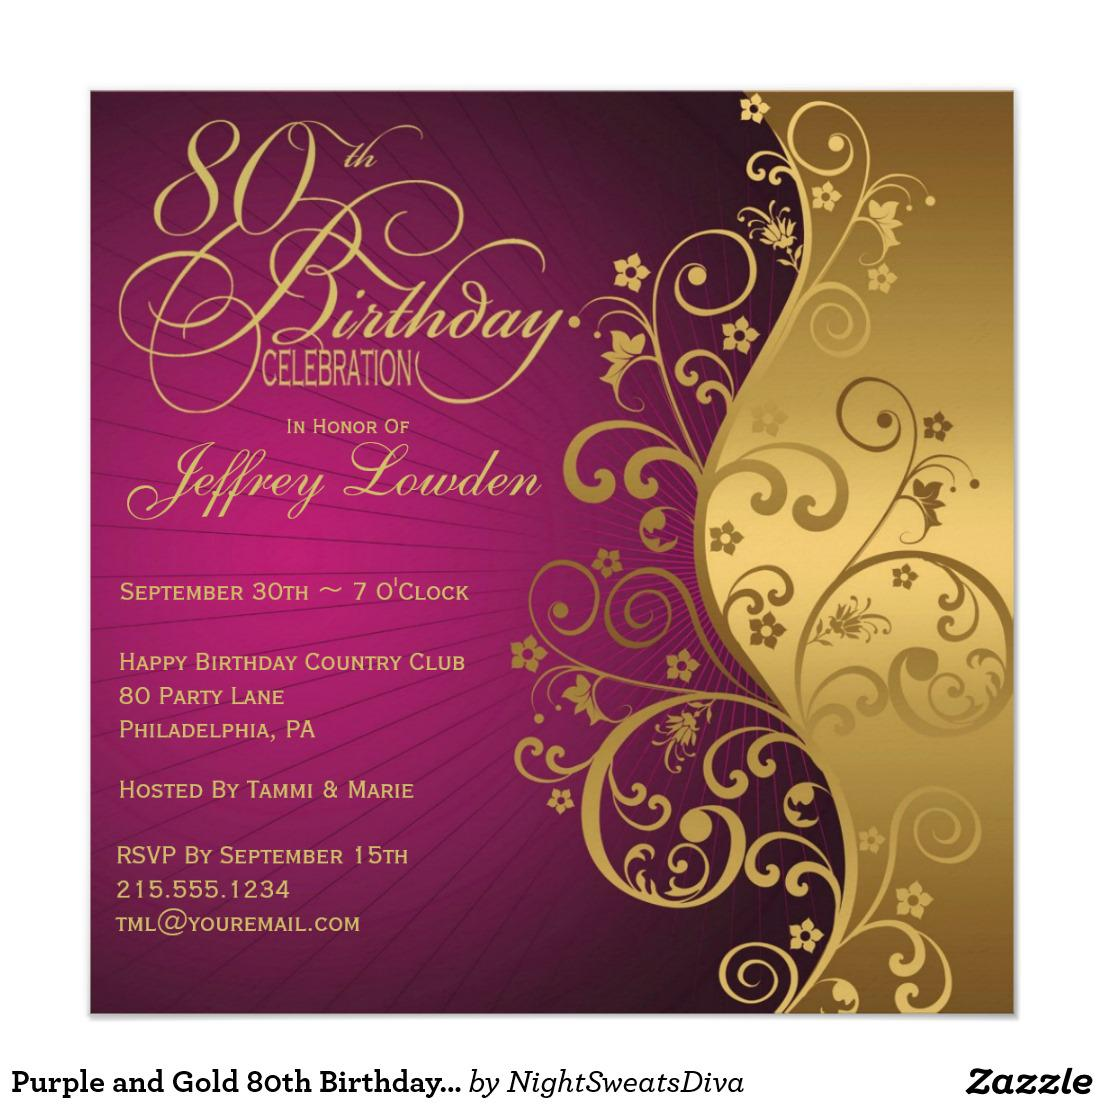 15 sample 80th birthday invitations templates ideas free sample 80th birthday party invitations purple and gold invitation luxury cards celebrations womens samples stopboris